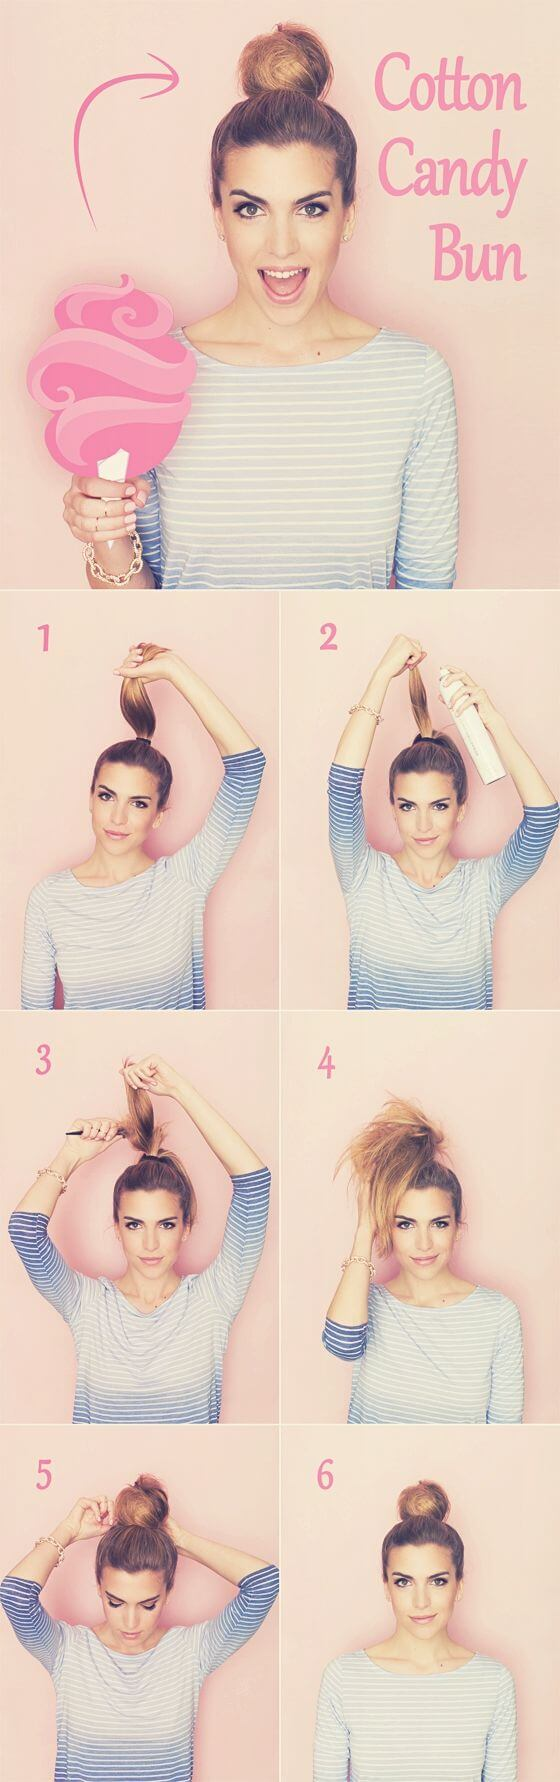 If buns and top knots are your thing, then you will love this cute fluffy cotton candy bun style.